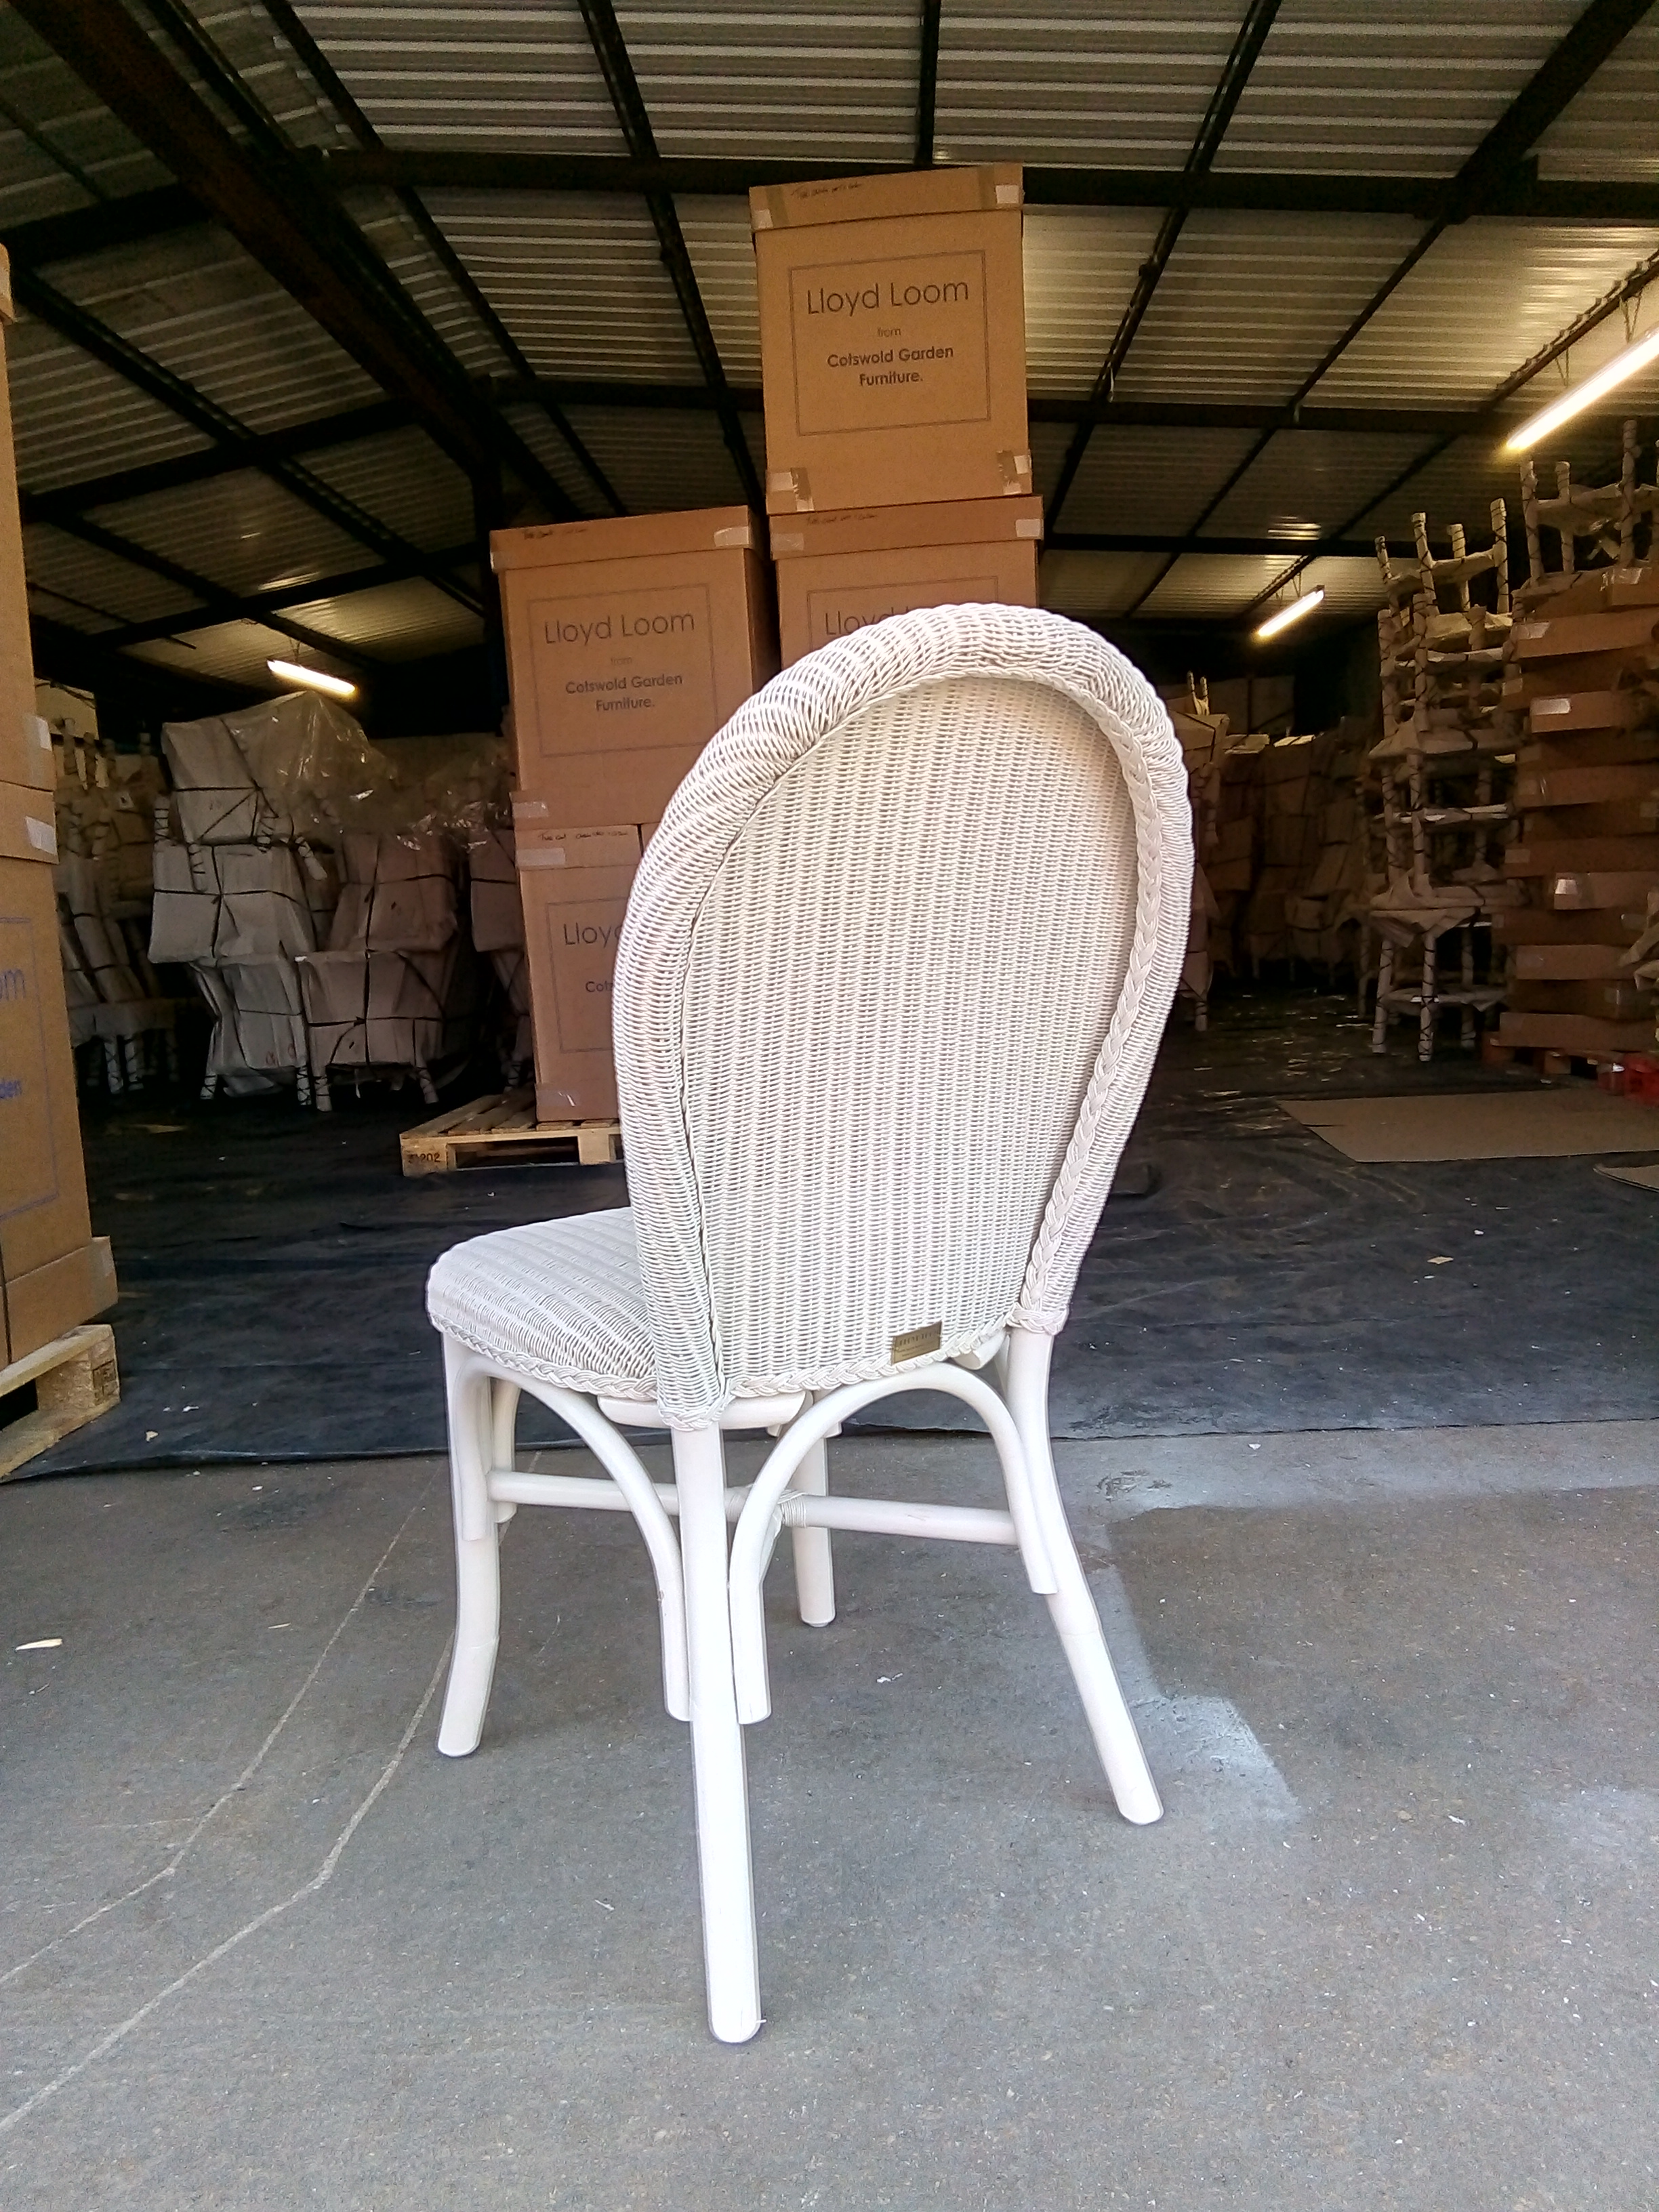 Lloyd Loom Bistro Chairs